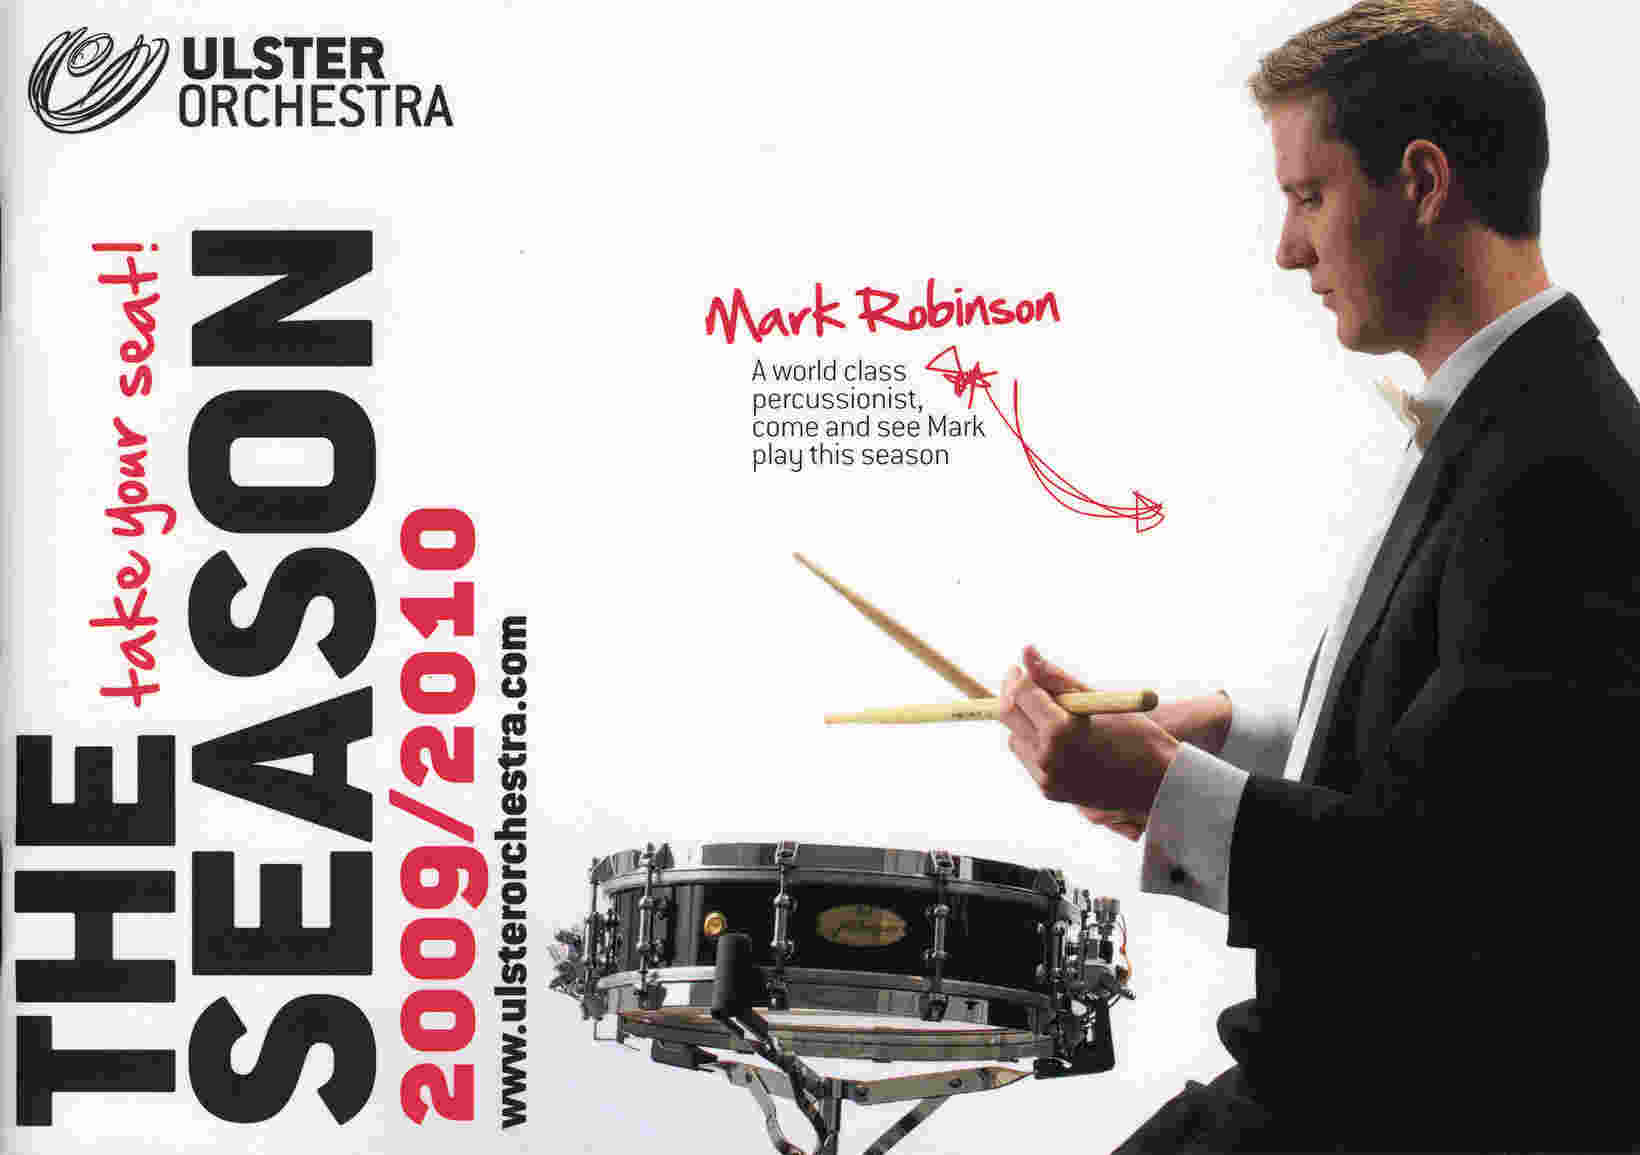 Ulster Orchestra season cover 2009-2010